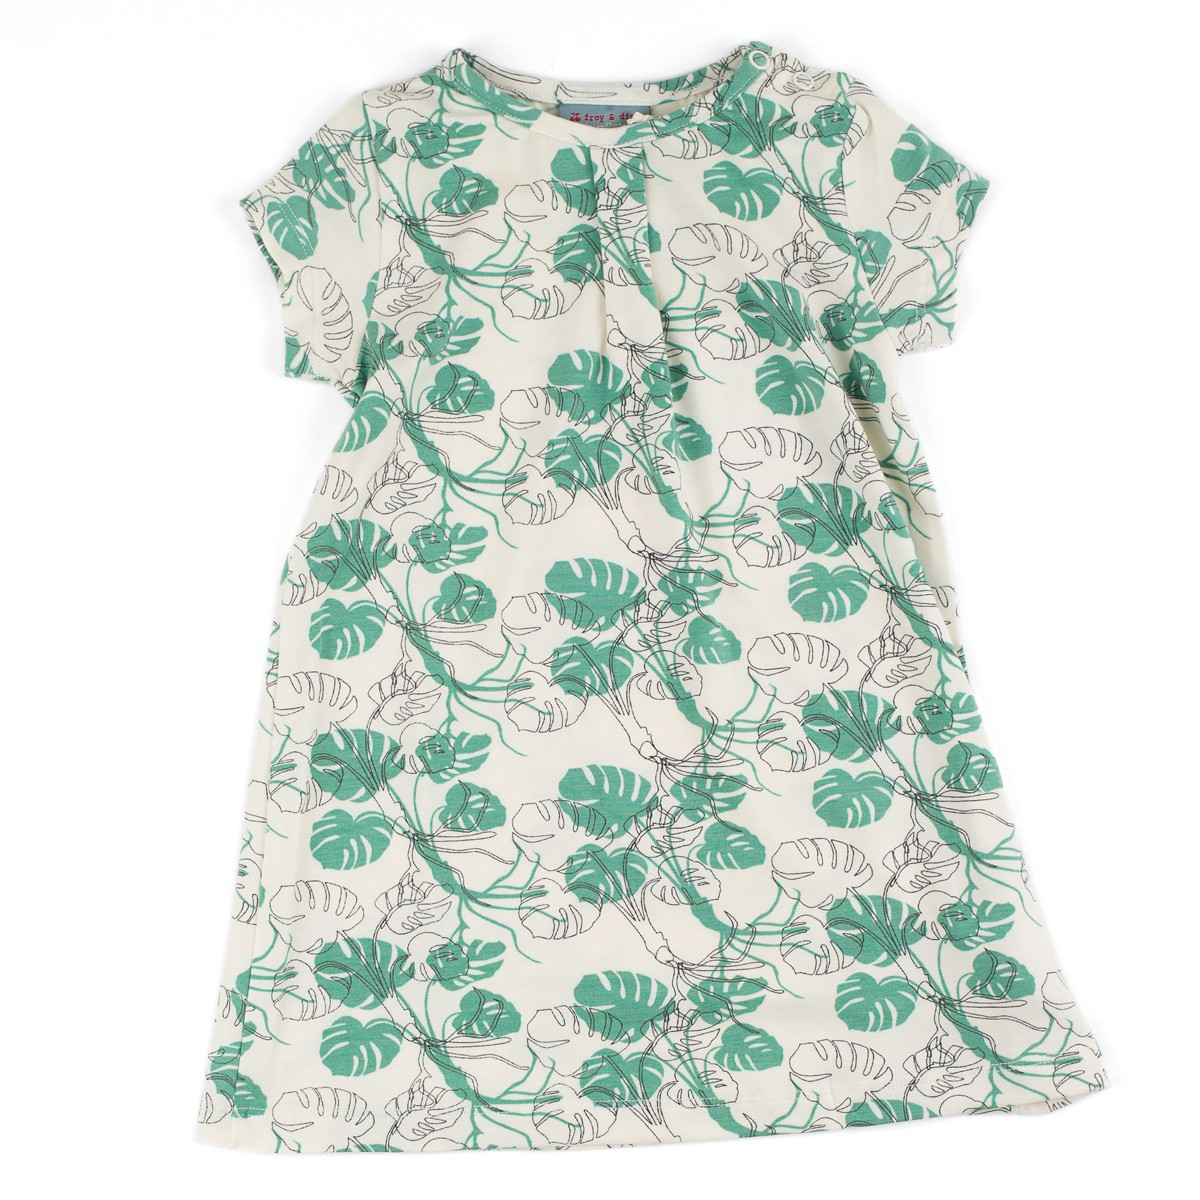 Dress rosetta monstera